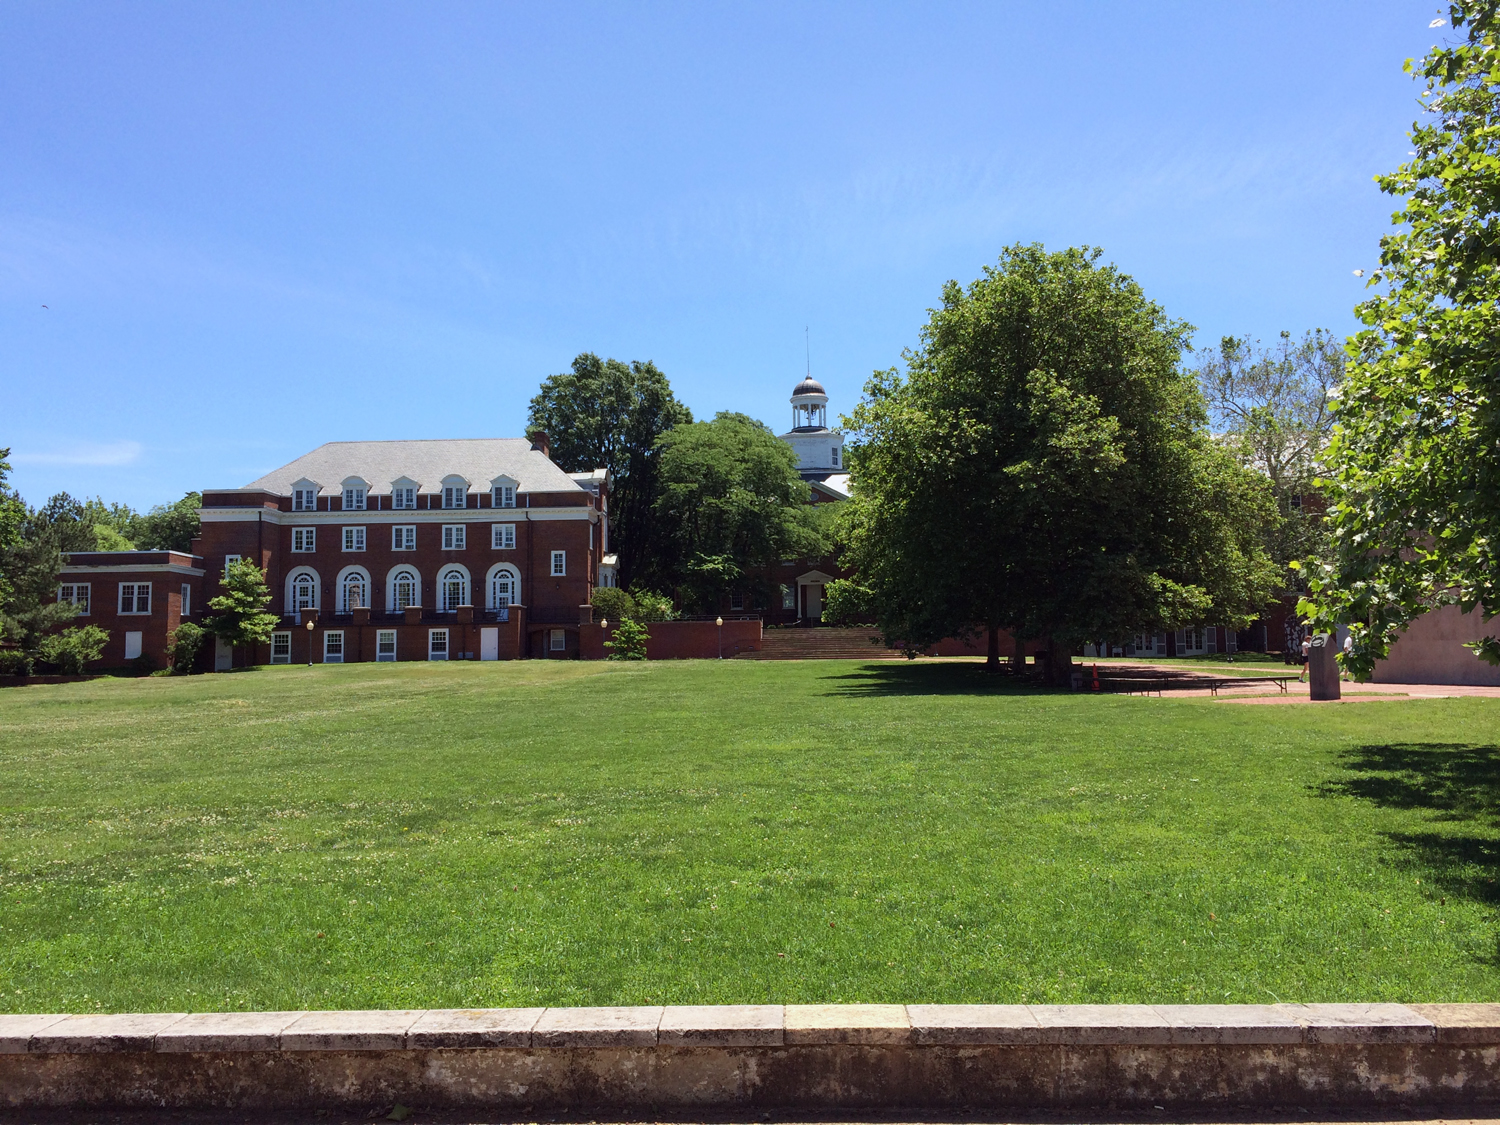 Grounds of The Mitchell Gallery at St. John's University, Annapolis, MD